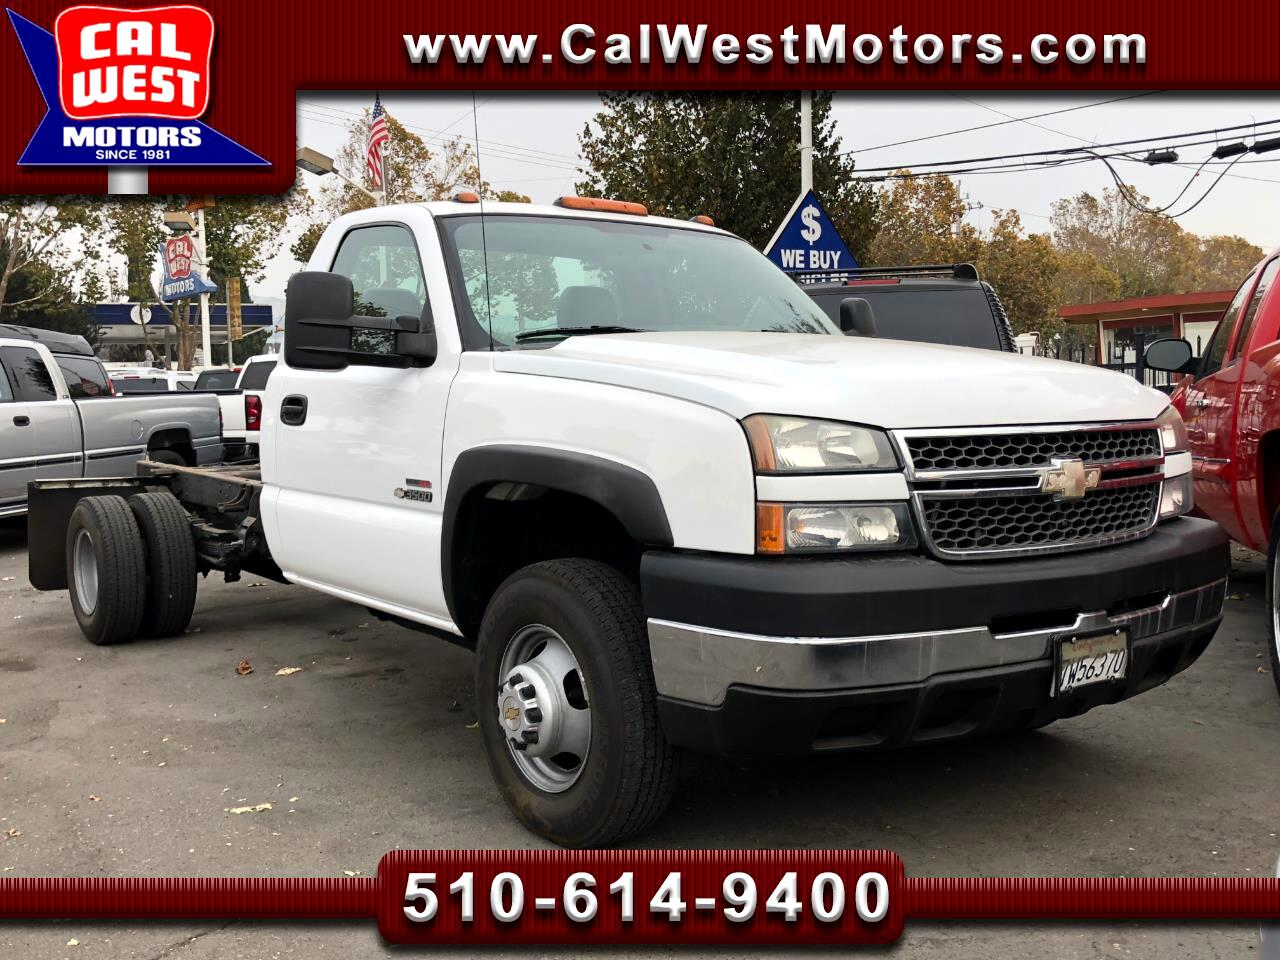 2005 Chevrolet Silverado 3500 Cab and Chassis 161.5 WB Duramax-Allison VeryClean